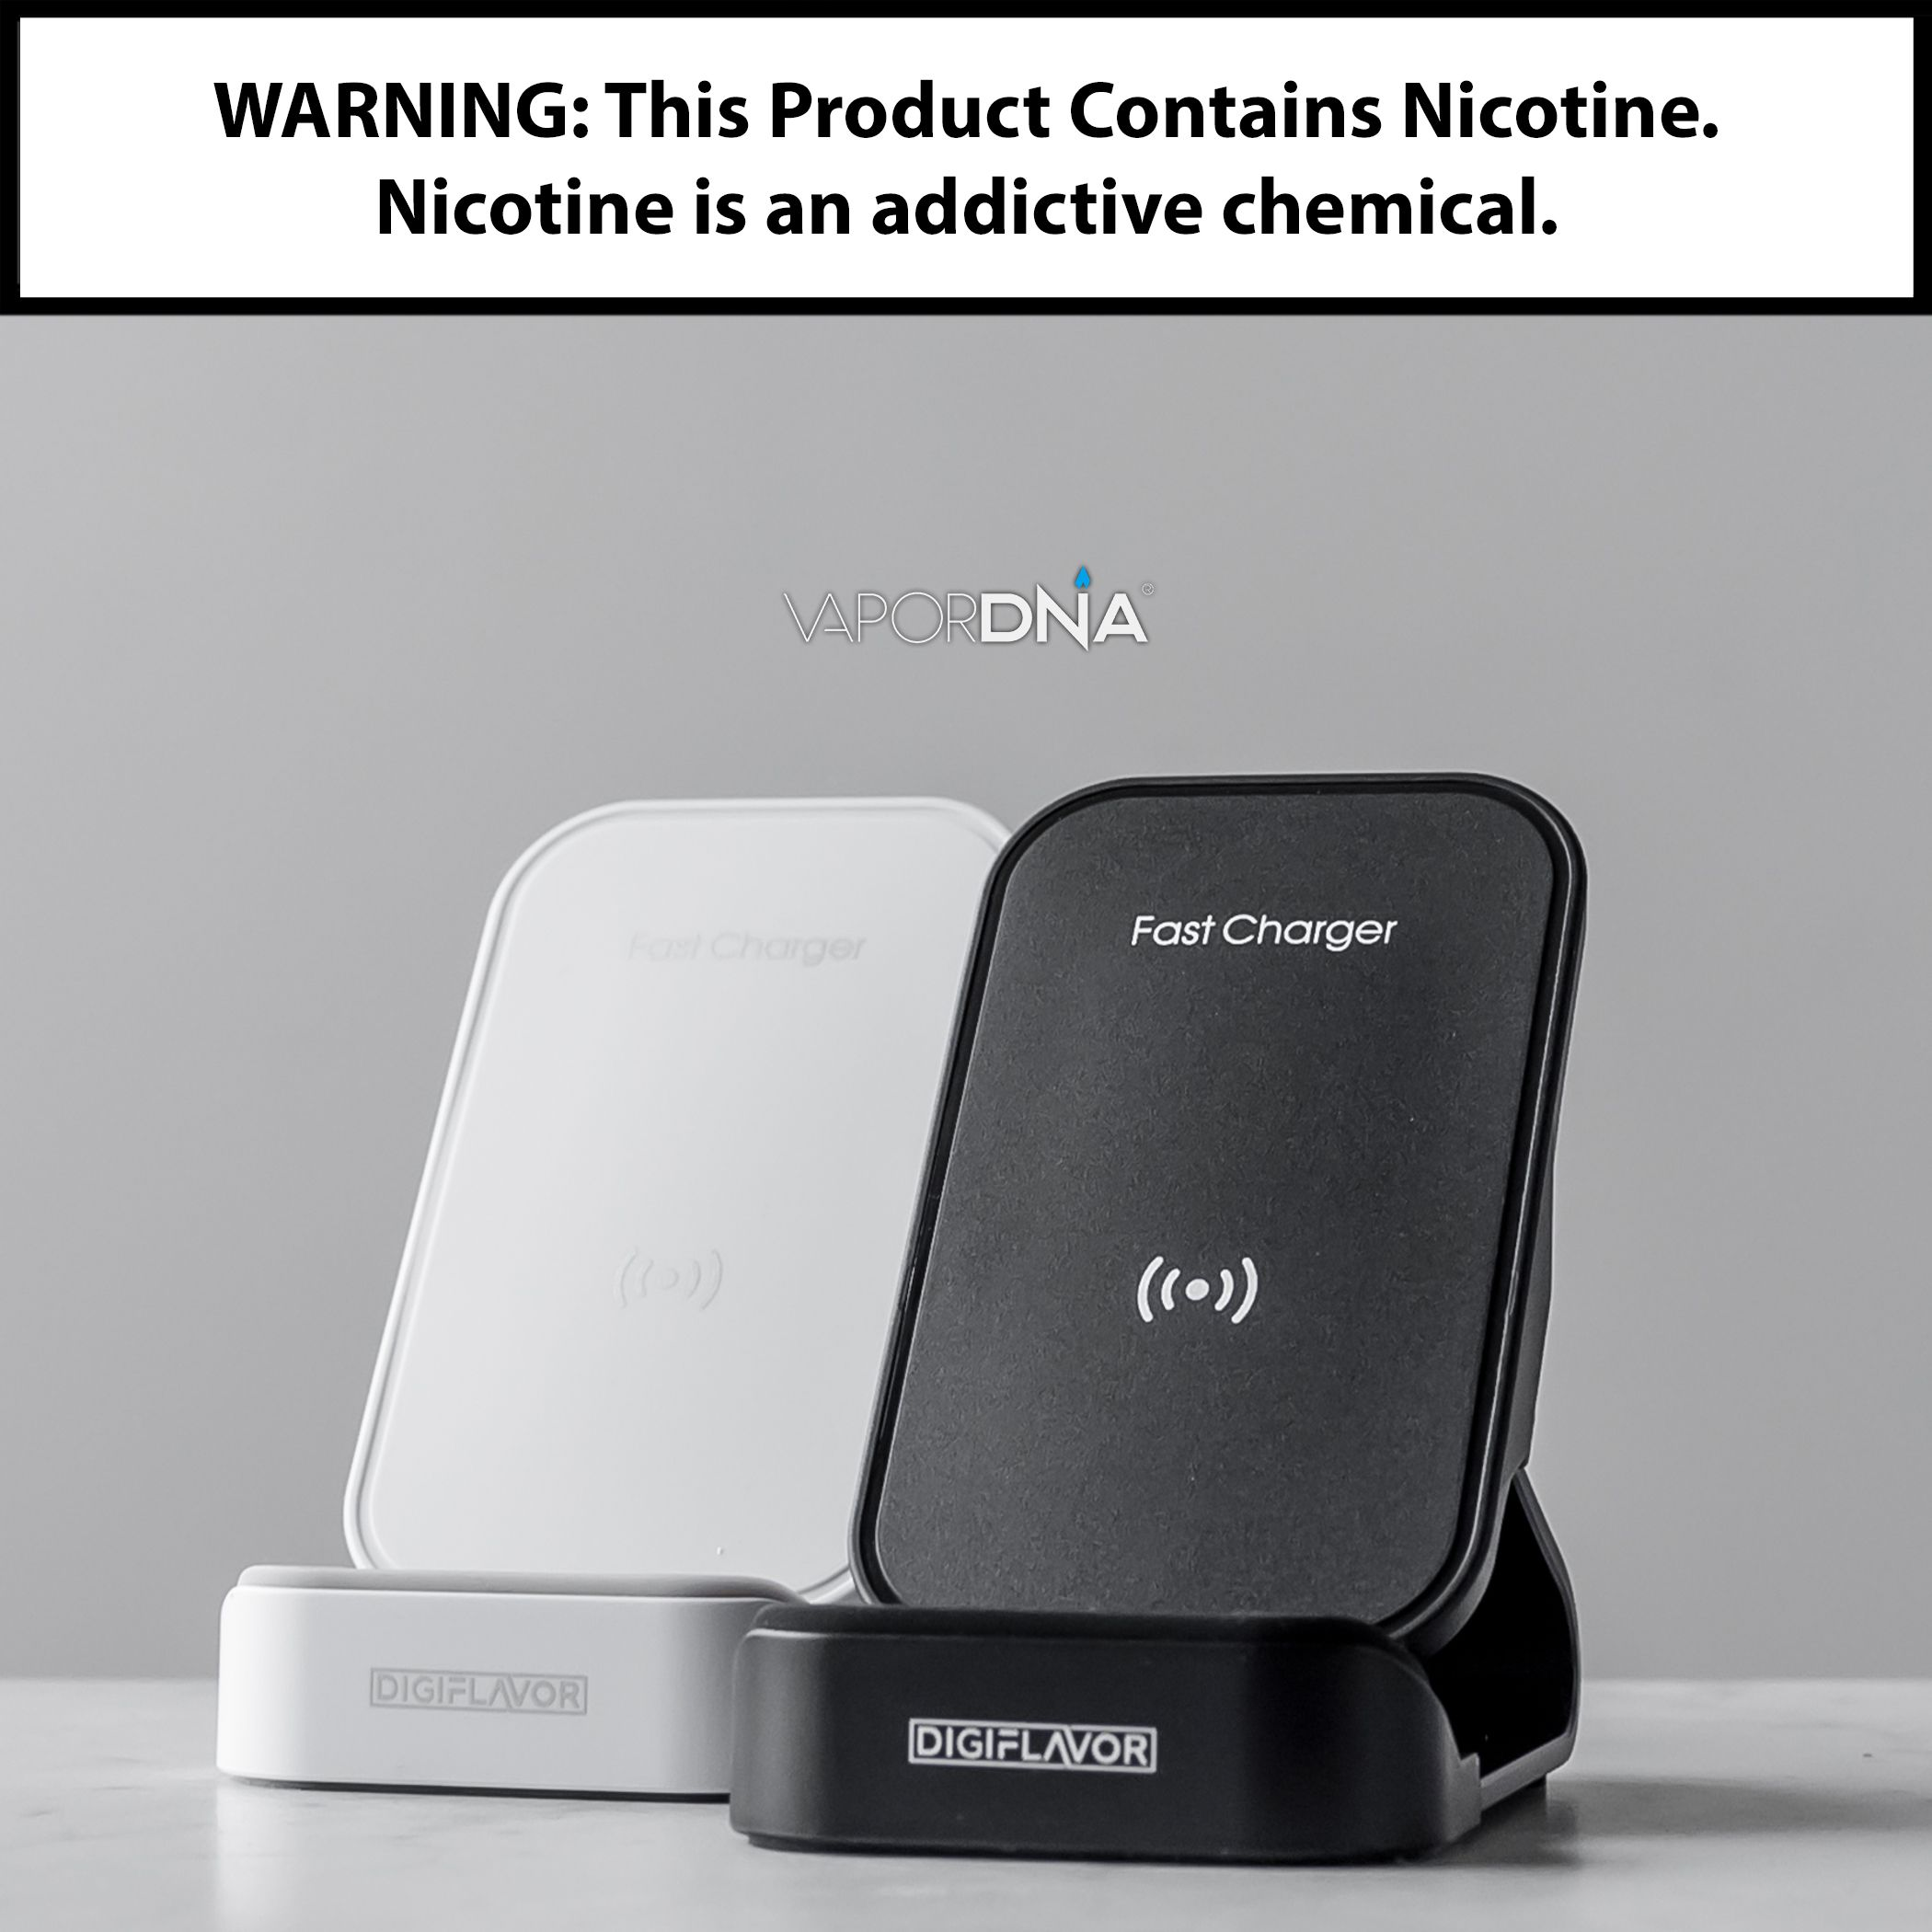 Digiflavor Edge Wireless Charger in 2019 | What's New